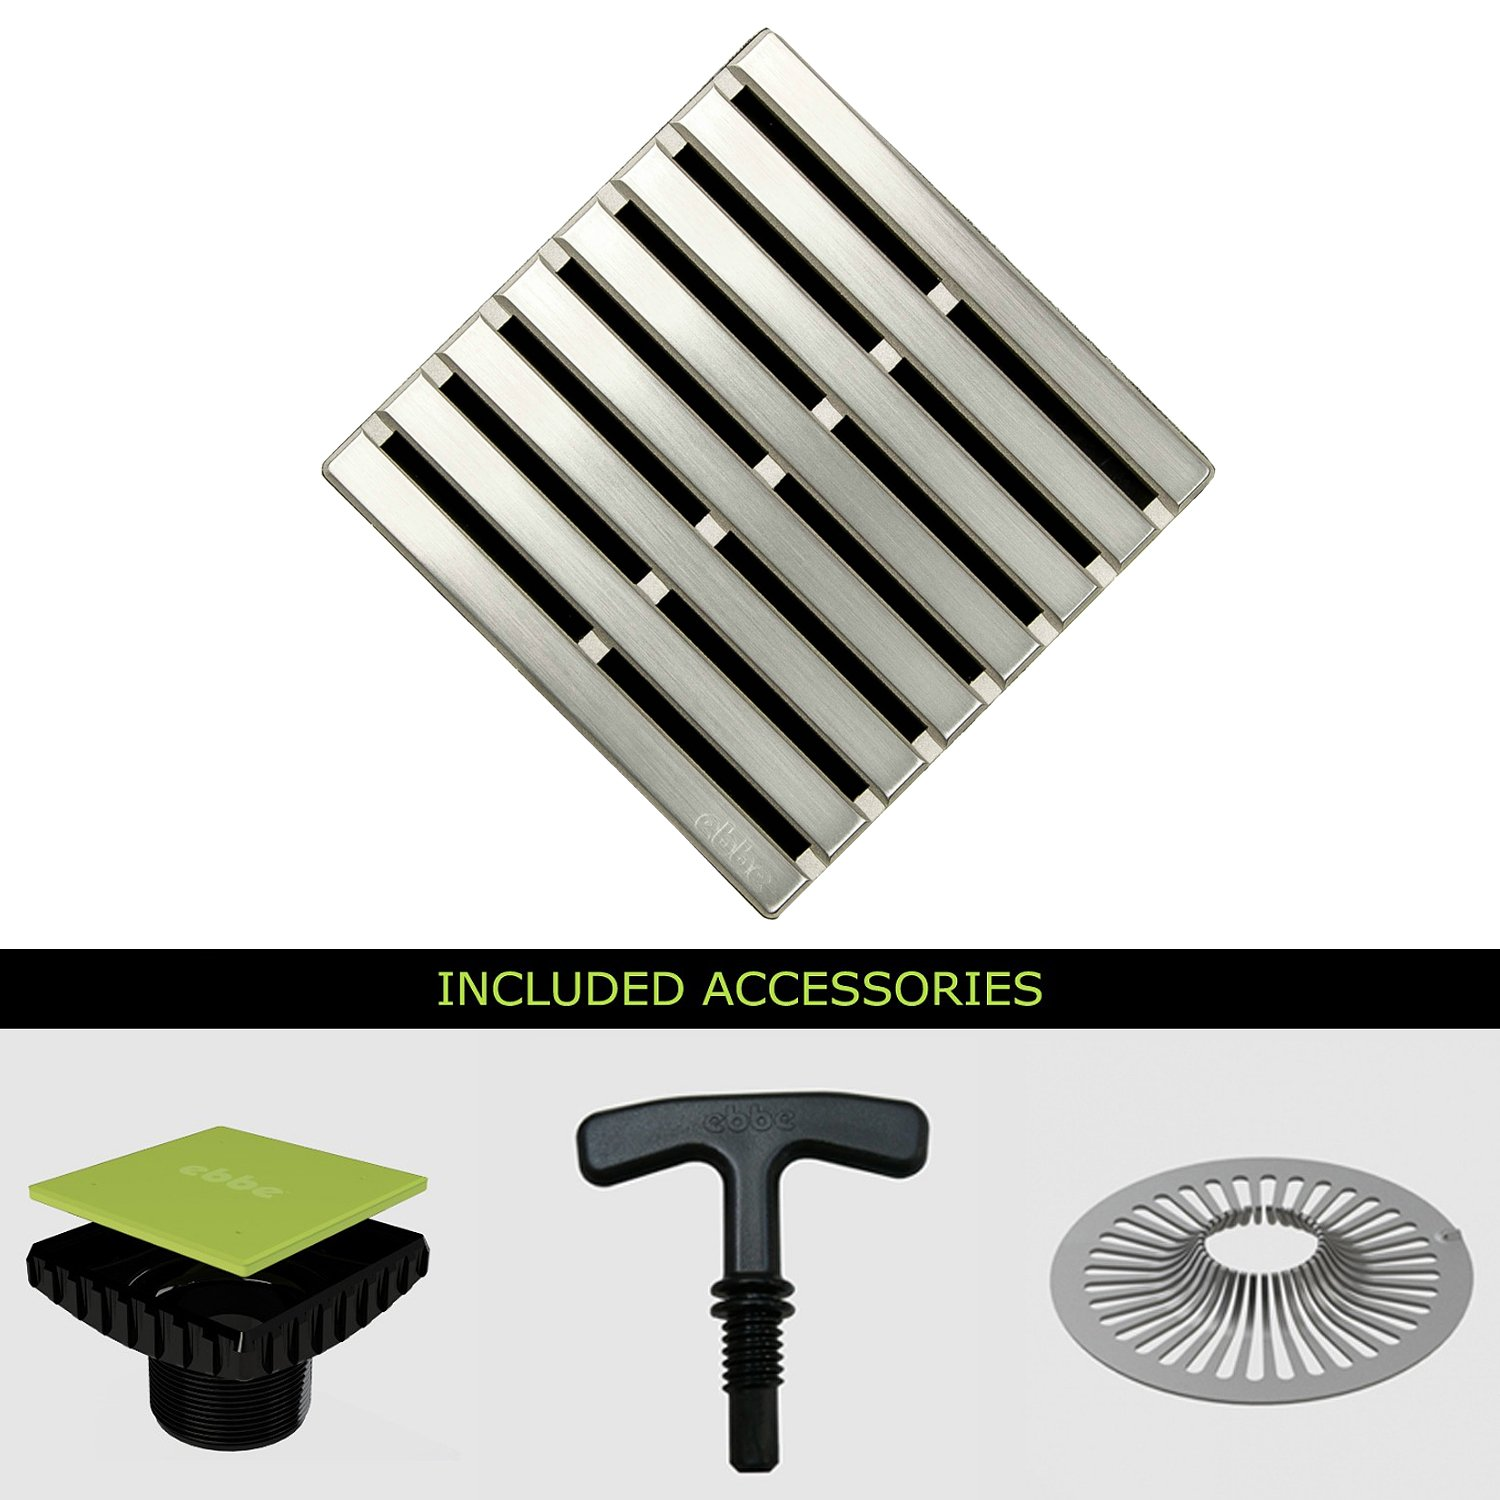 Ebbe E4811-BS-E4400 Unique Grate in Brushed Stainless & Drain Riser w/ T-Puller & Hair Trap